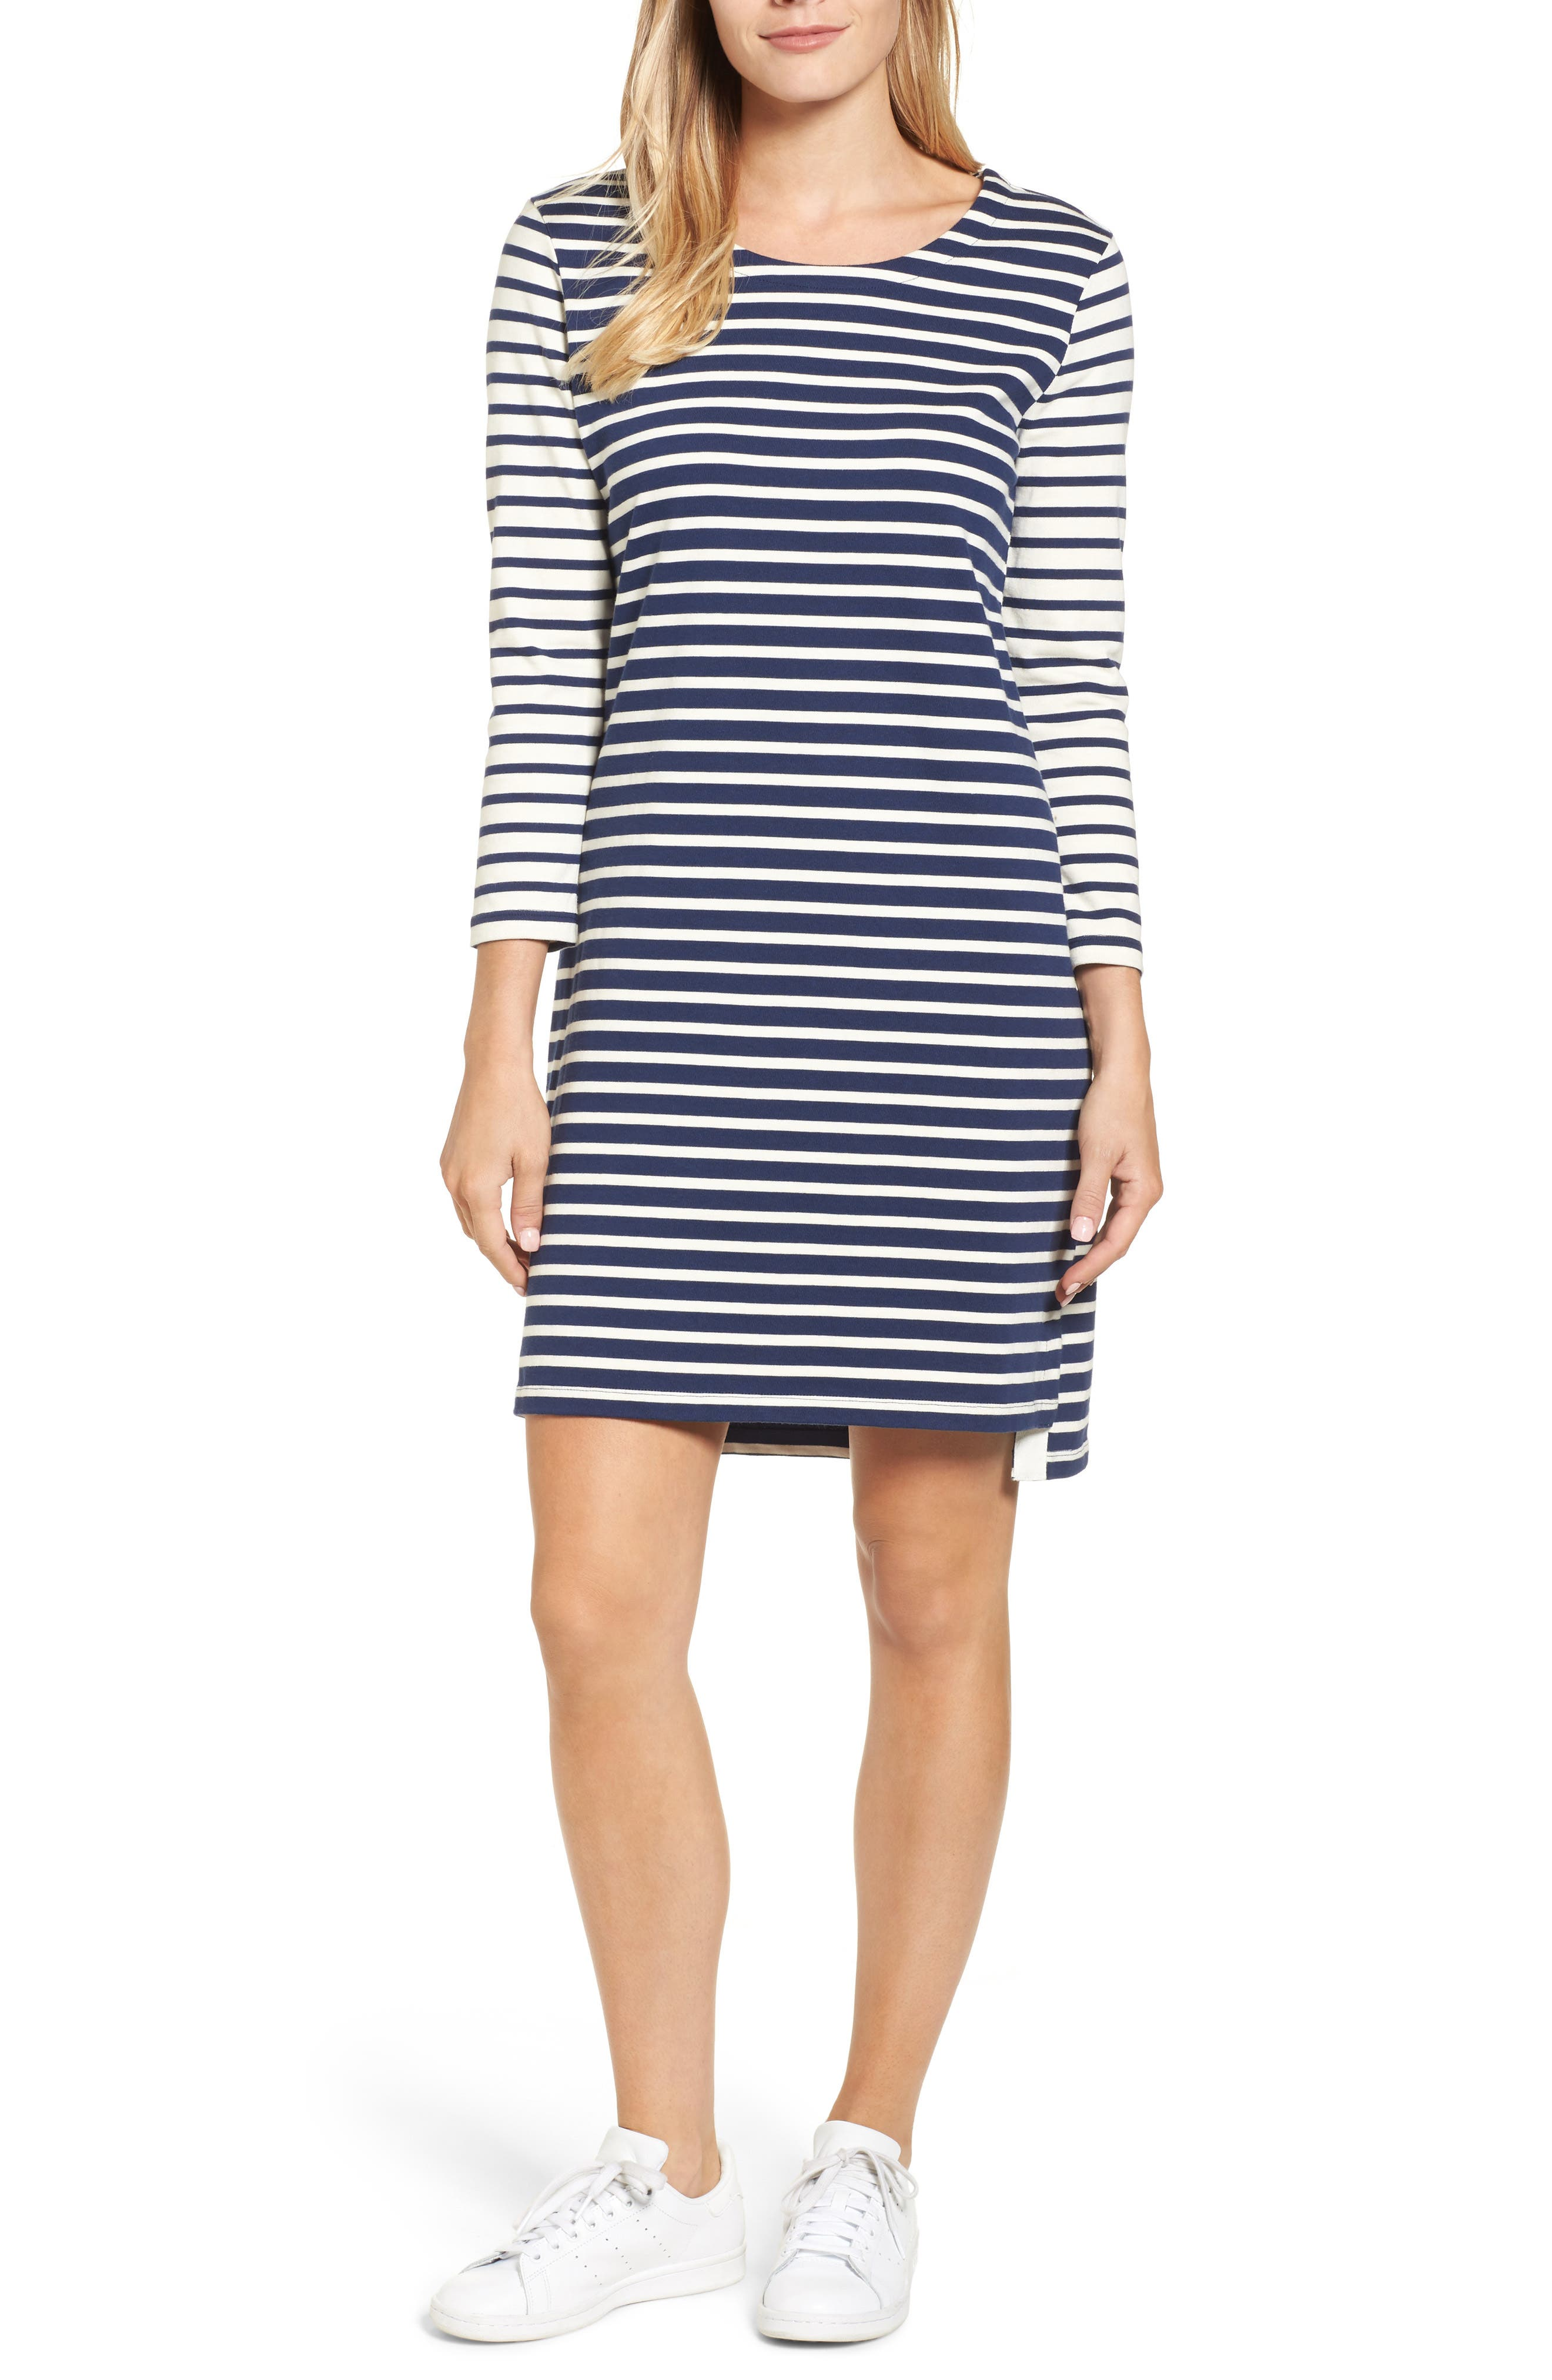 vineyard vines Mixed Stripe Knit Dress